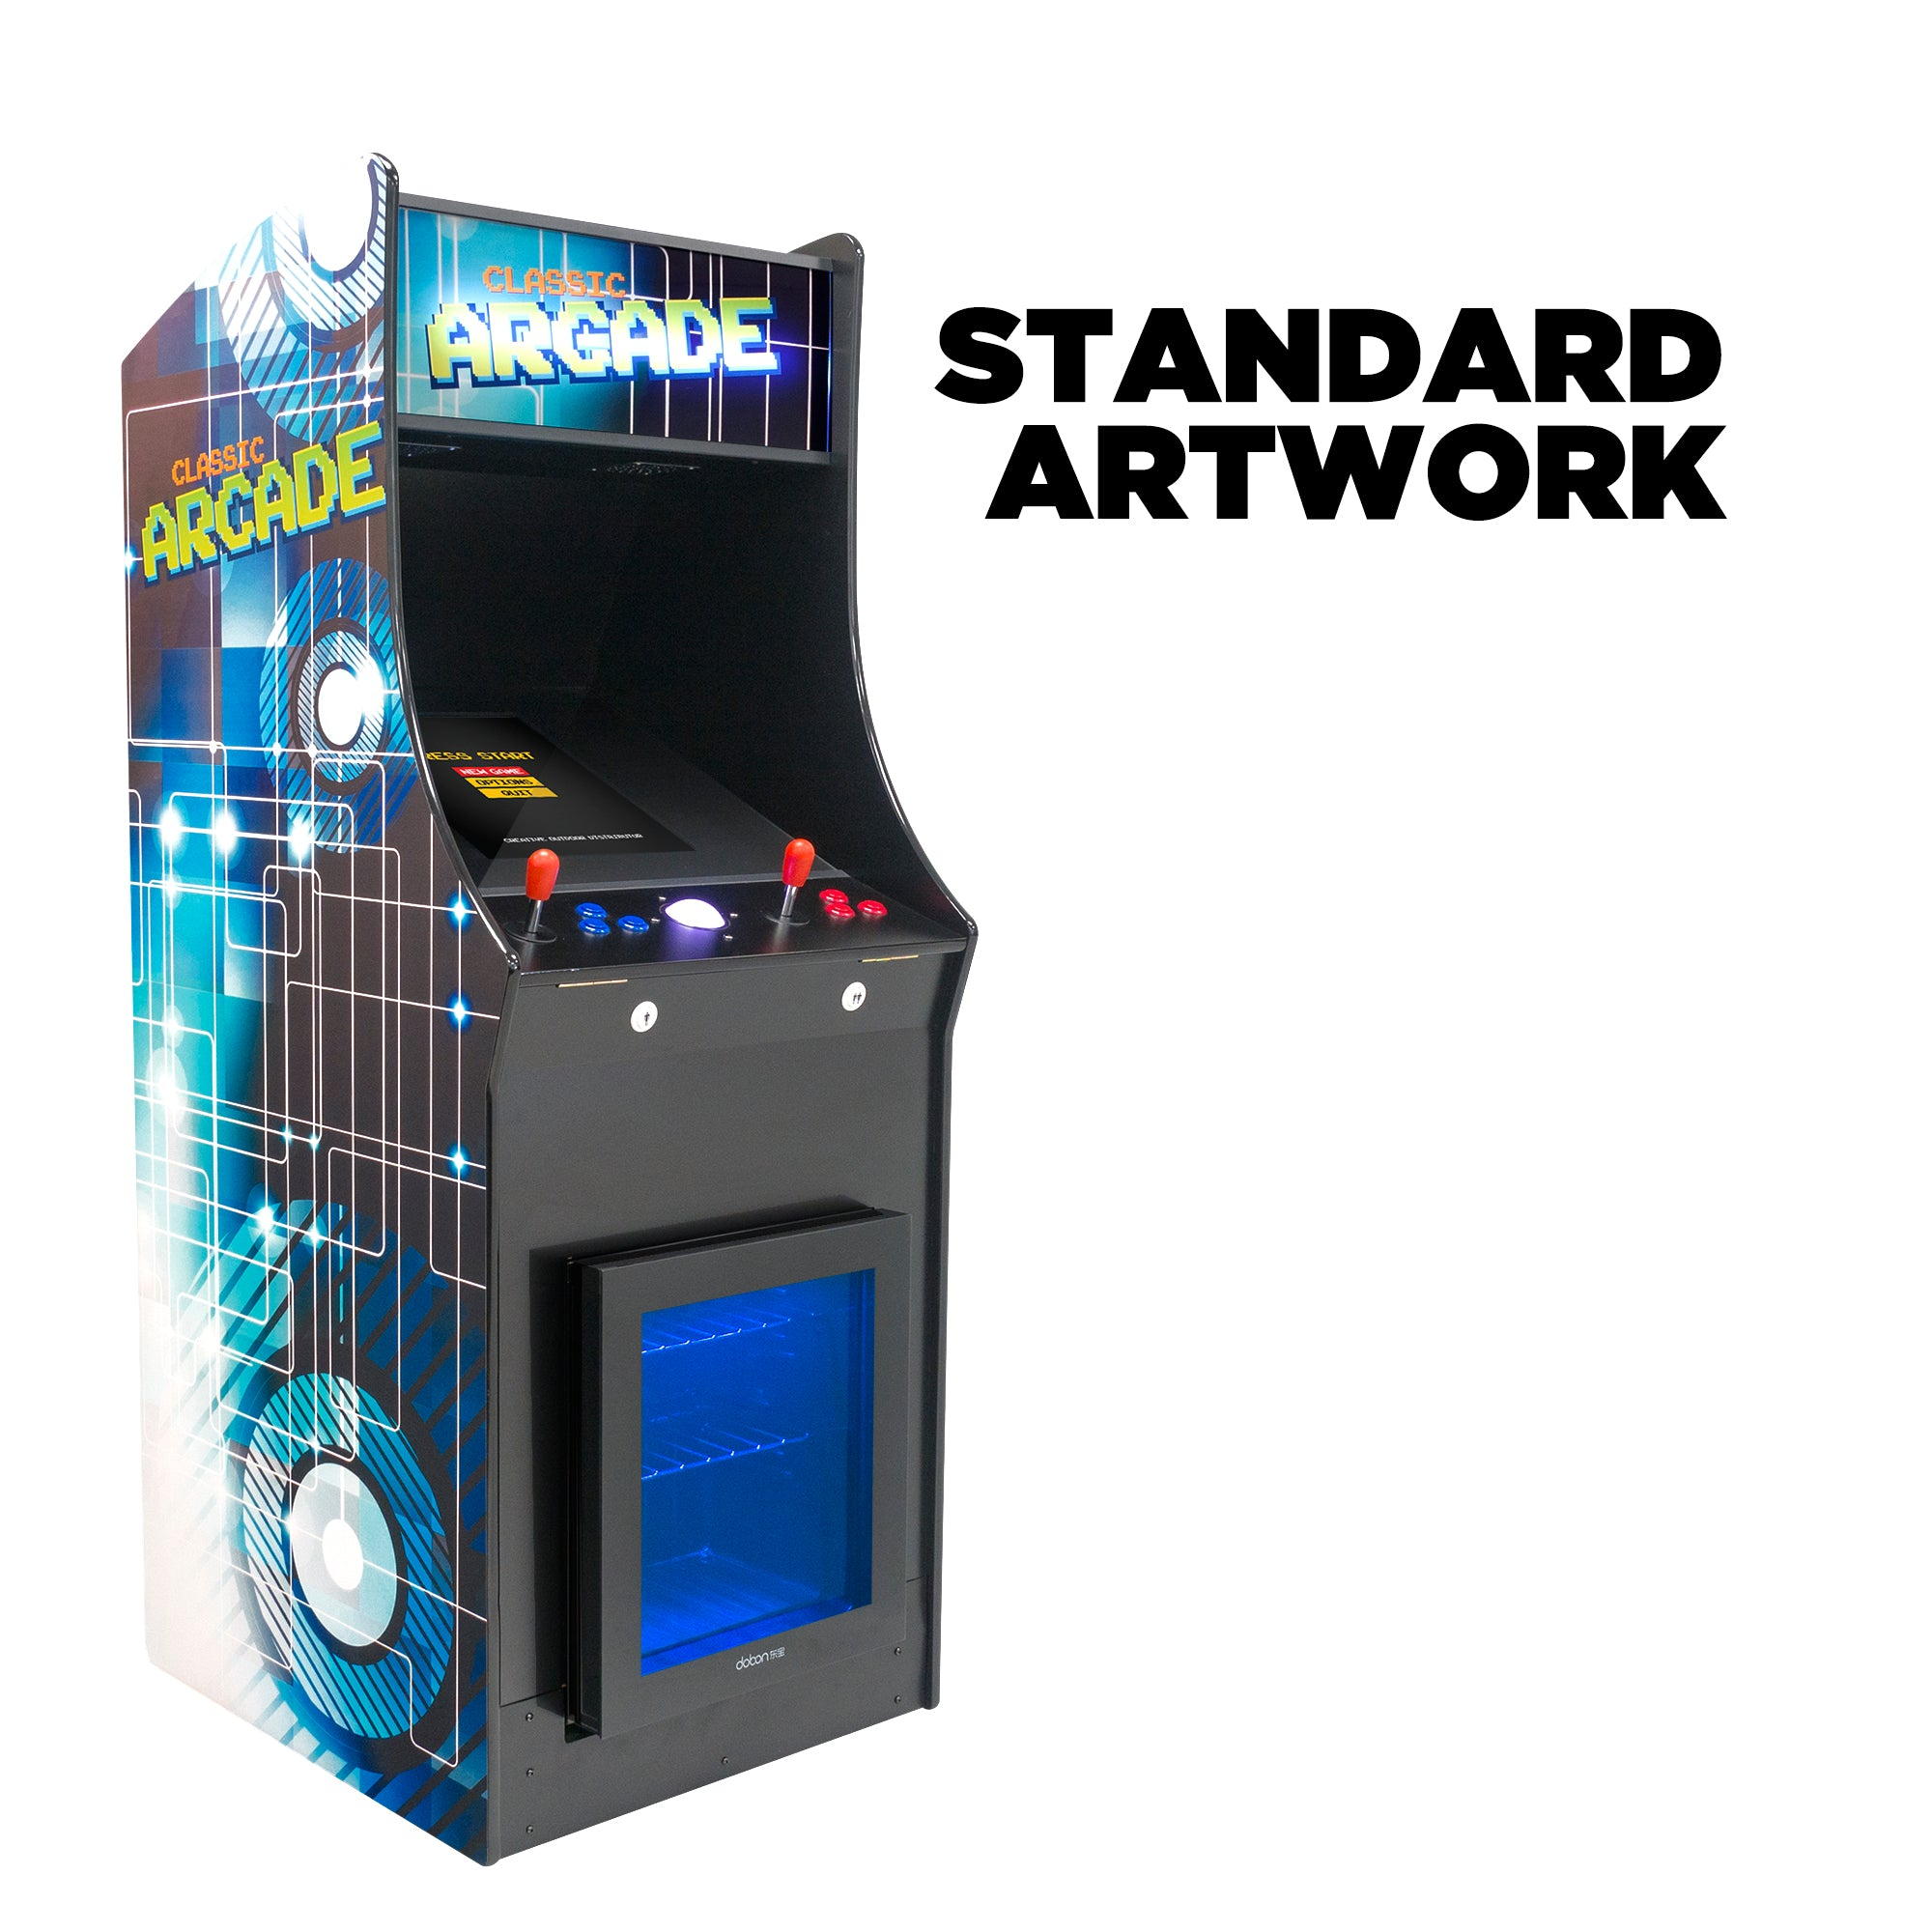 2 Player Stand Up FULL SIZE | 60-4500 Games | Classic Video Game Arcade with Built in Refrigerator | Trackball | Stools Included